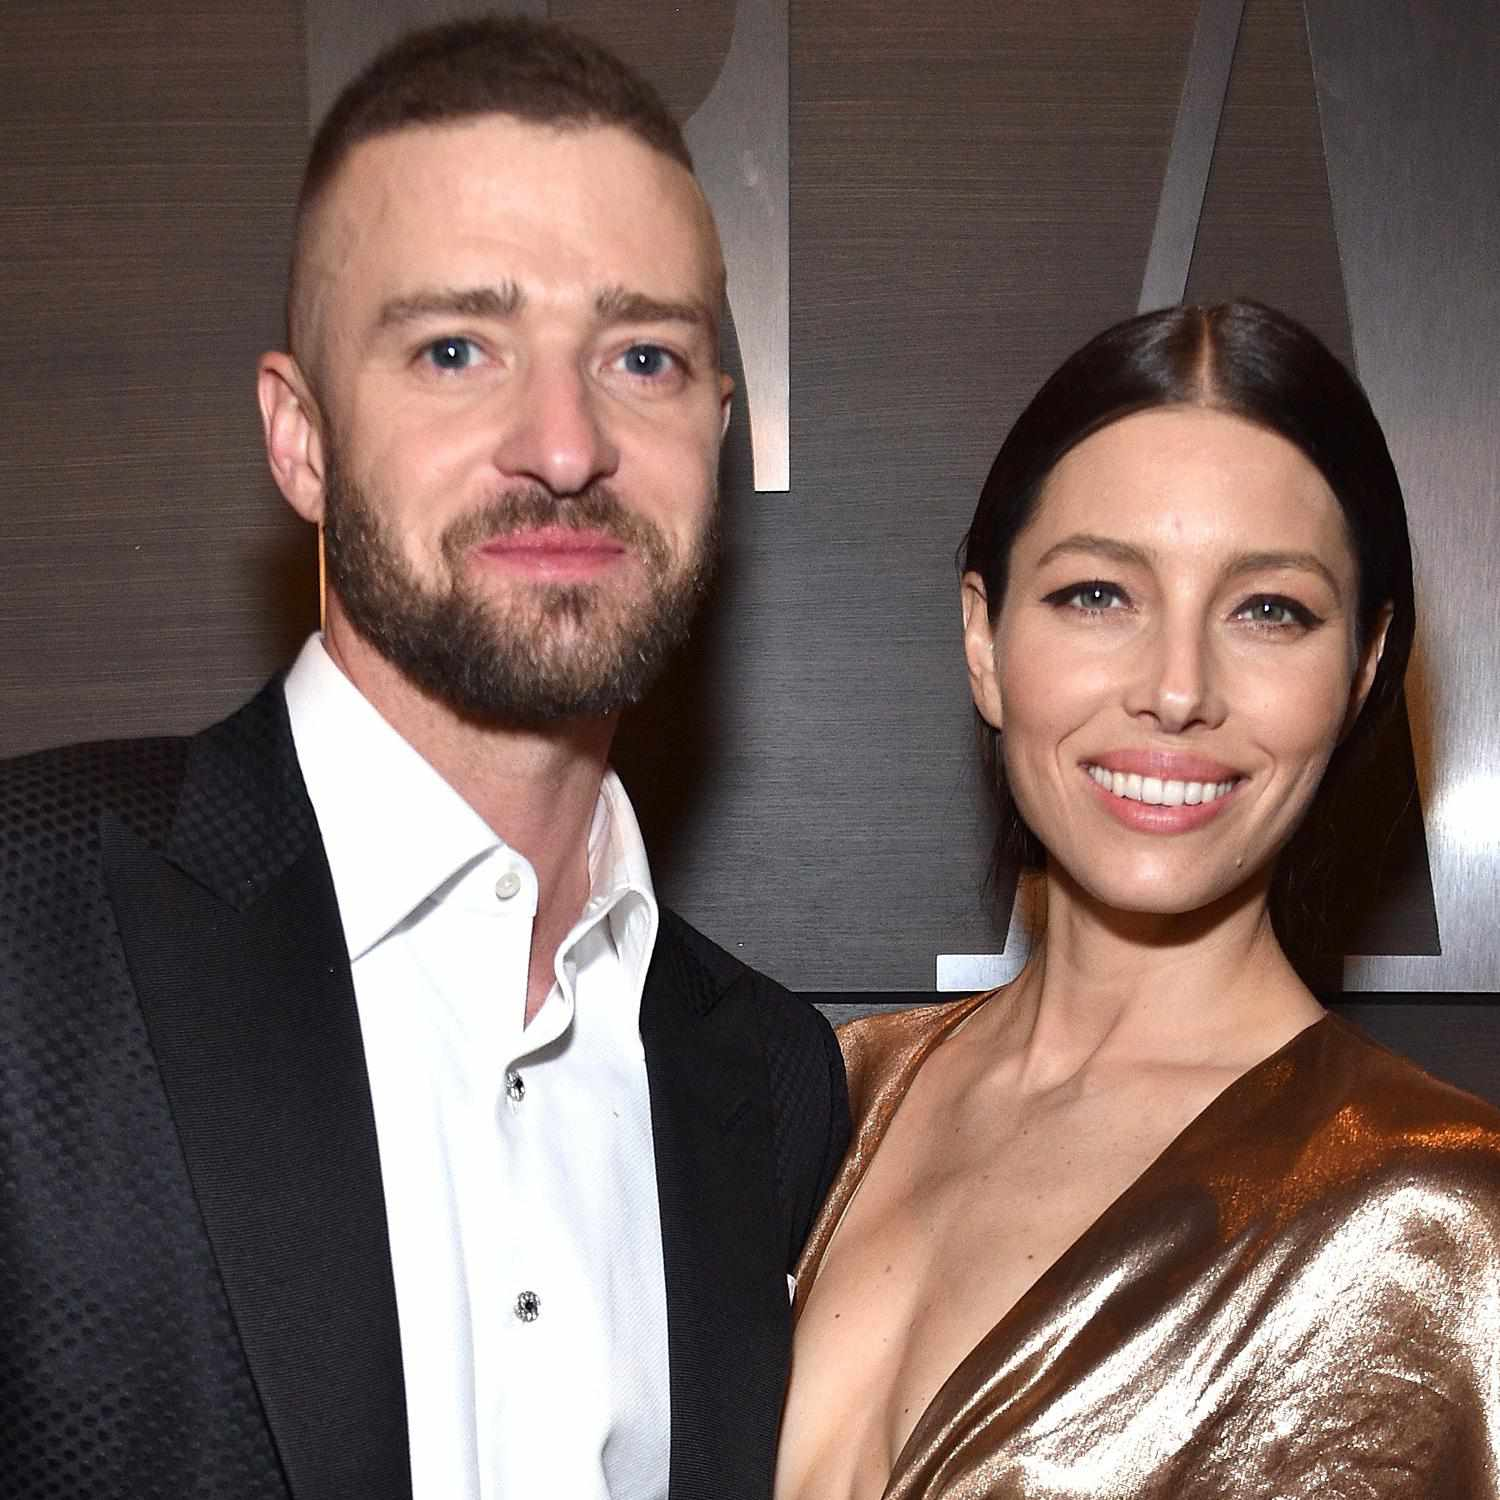 Justin Timberlake Just Revealed The Swoon-Worthy Way He